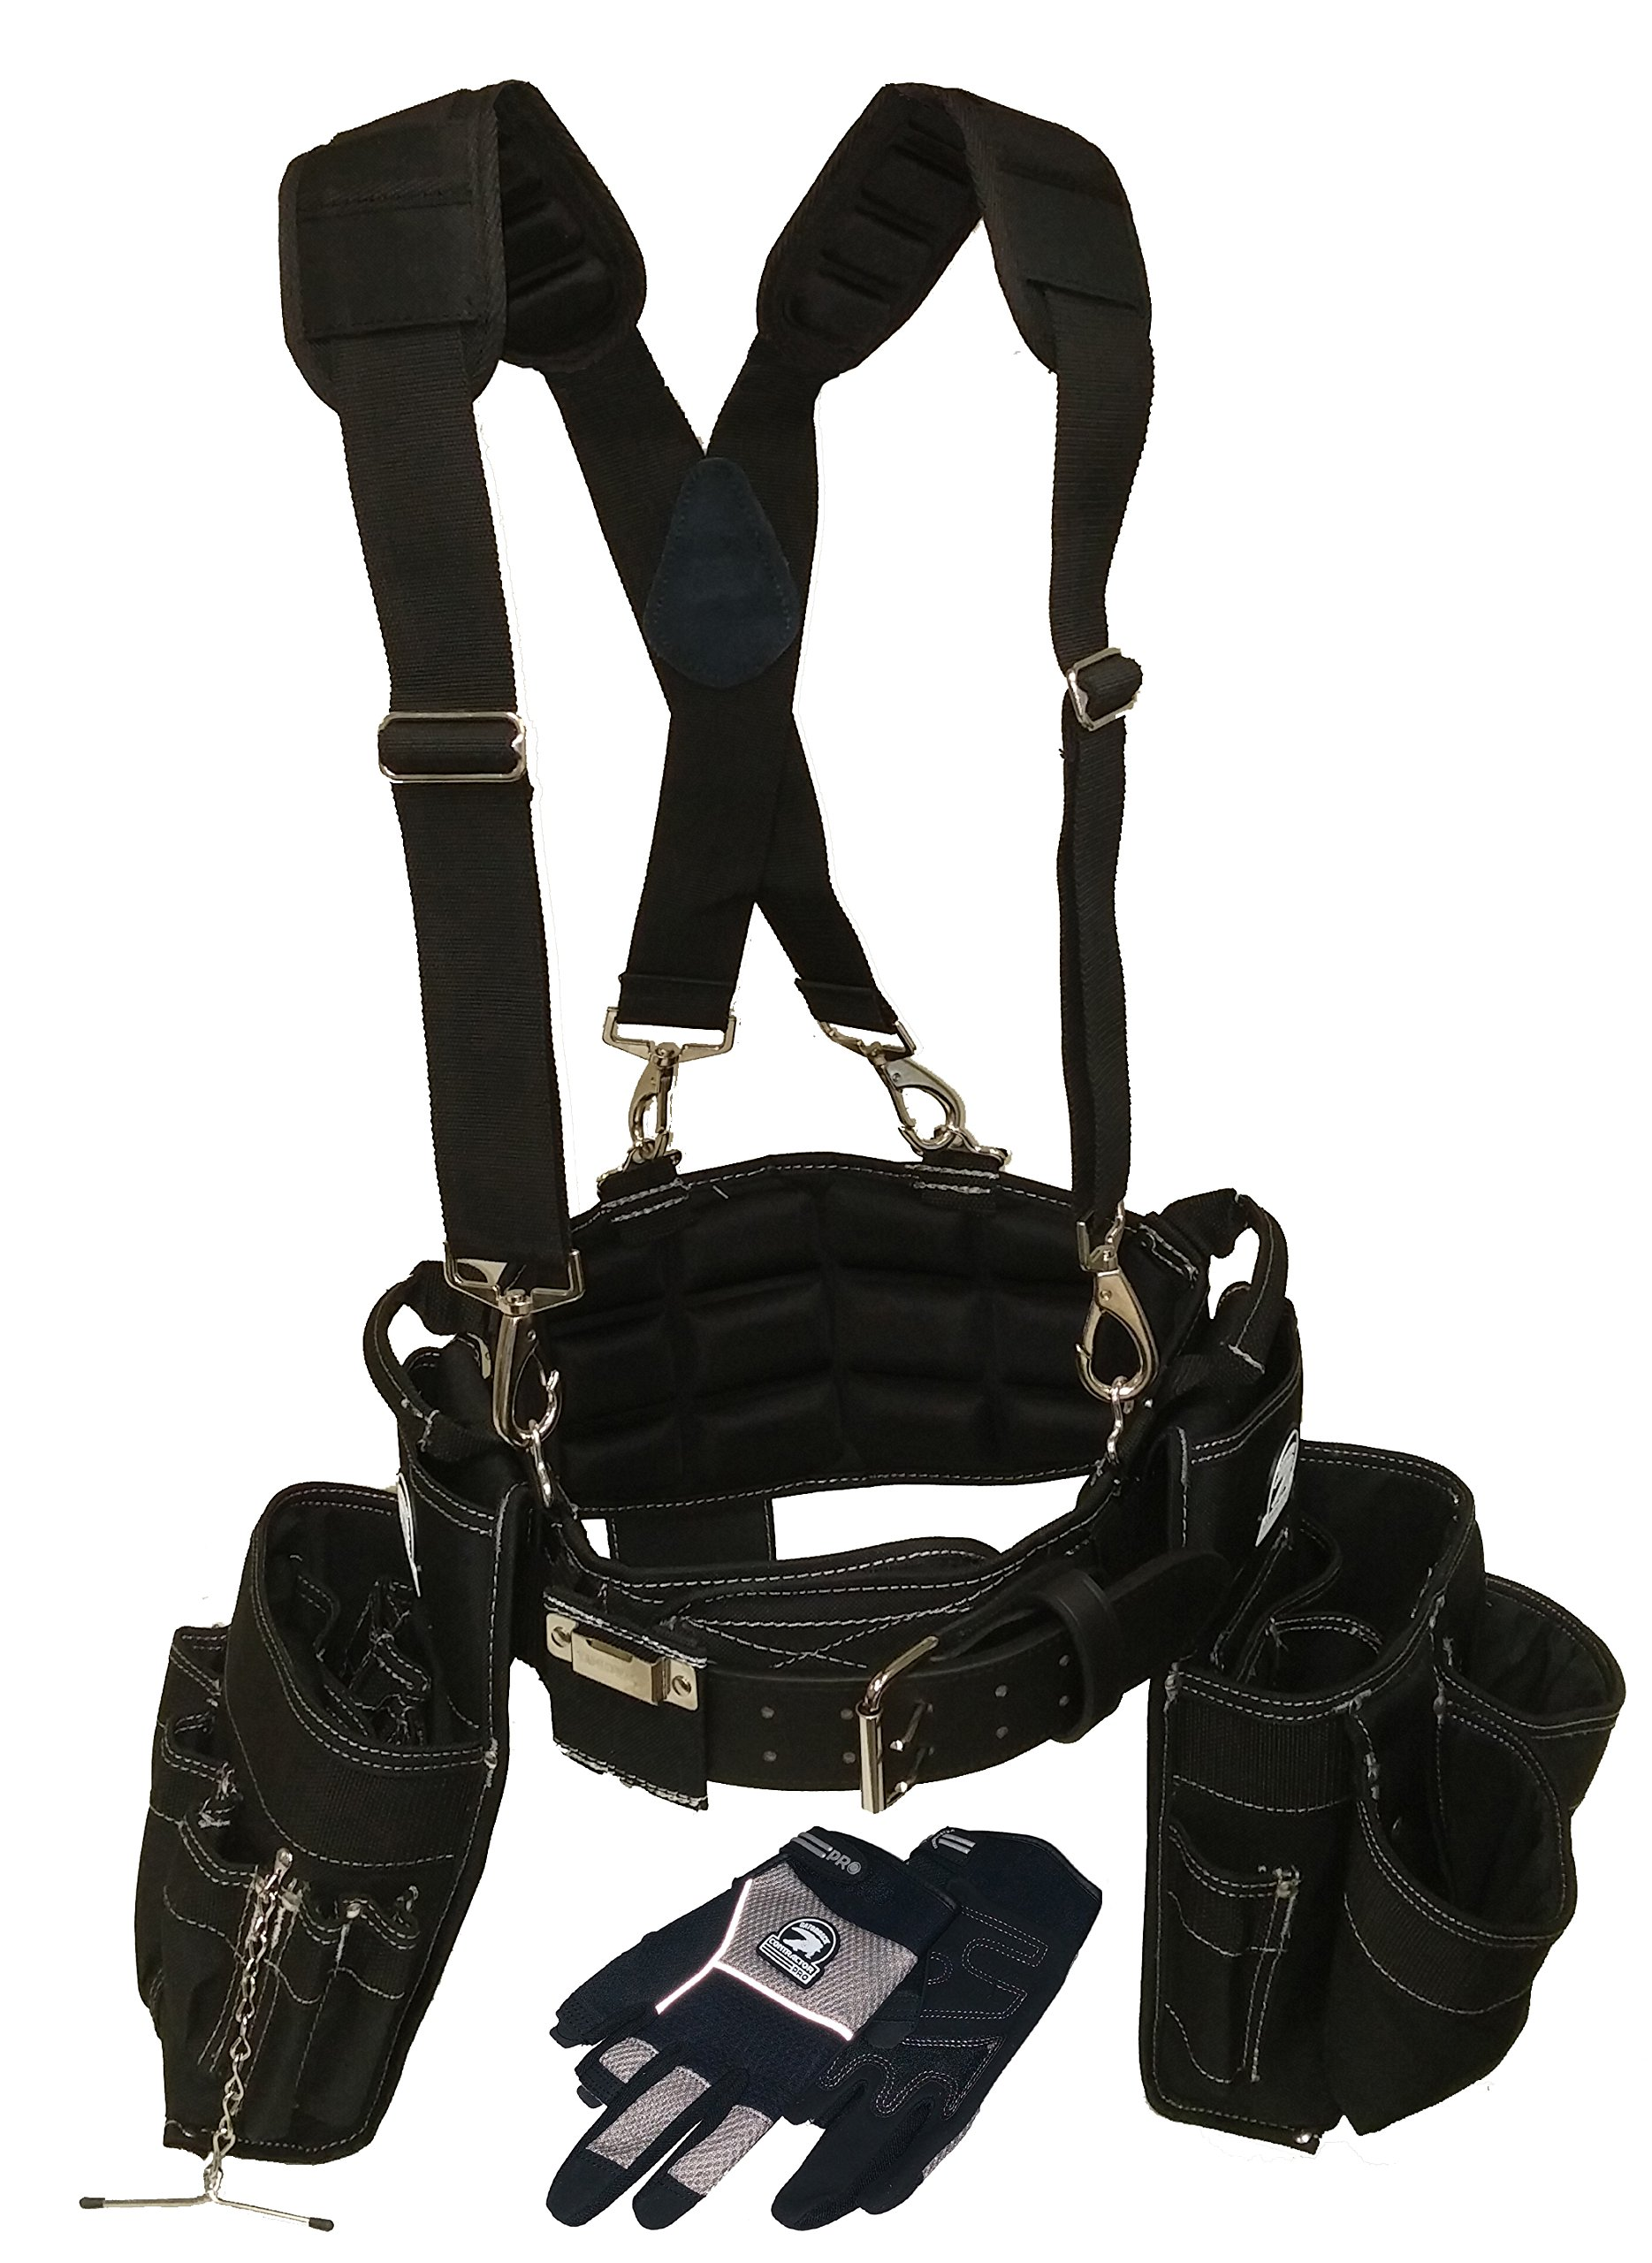 Gatorback Electricians Combo Deluxe Package (Tool Belt, Suspenders, Gloves, Drill Holster) Ventilated Back Support Belt w/Suspenders and Extras. For Electricians, Carpenters, Framer (Medium 31''-34'') by Contractor Pro